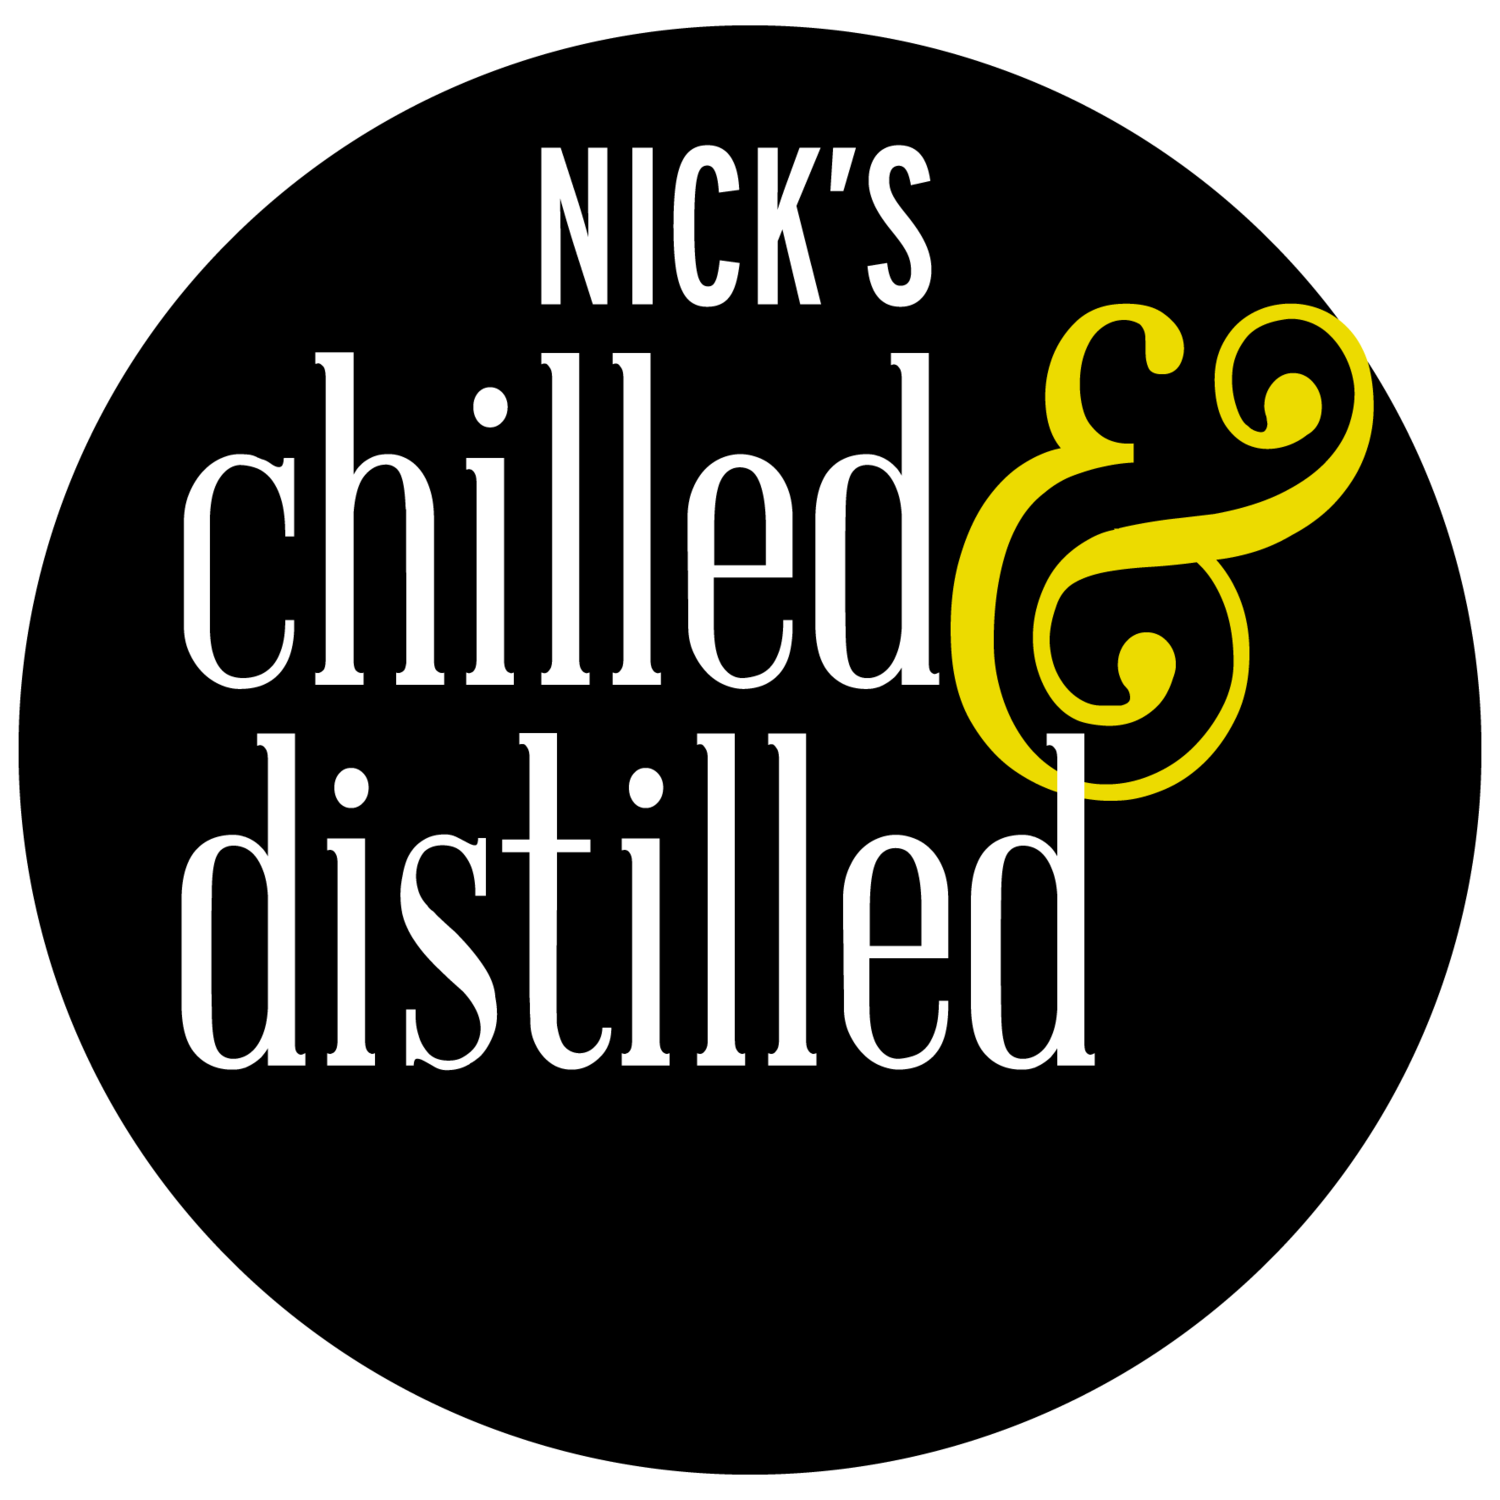 Nicks Chilled & Distilled